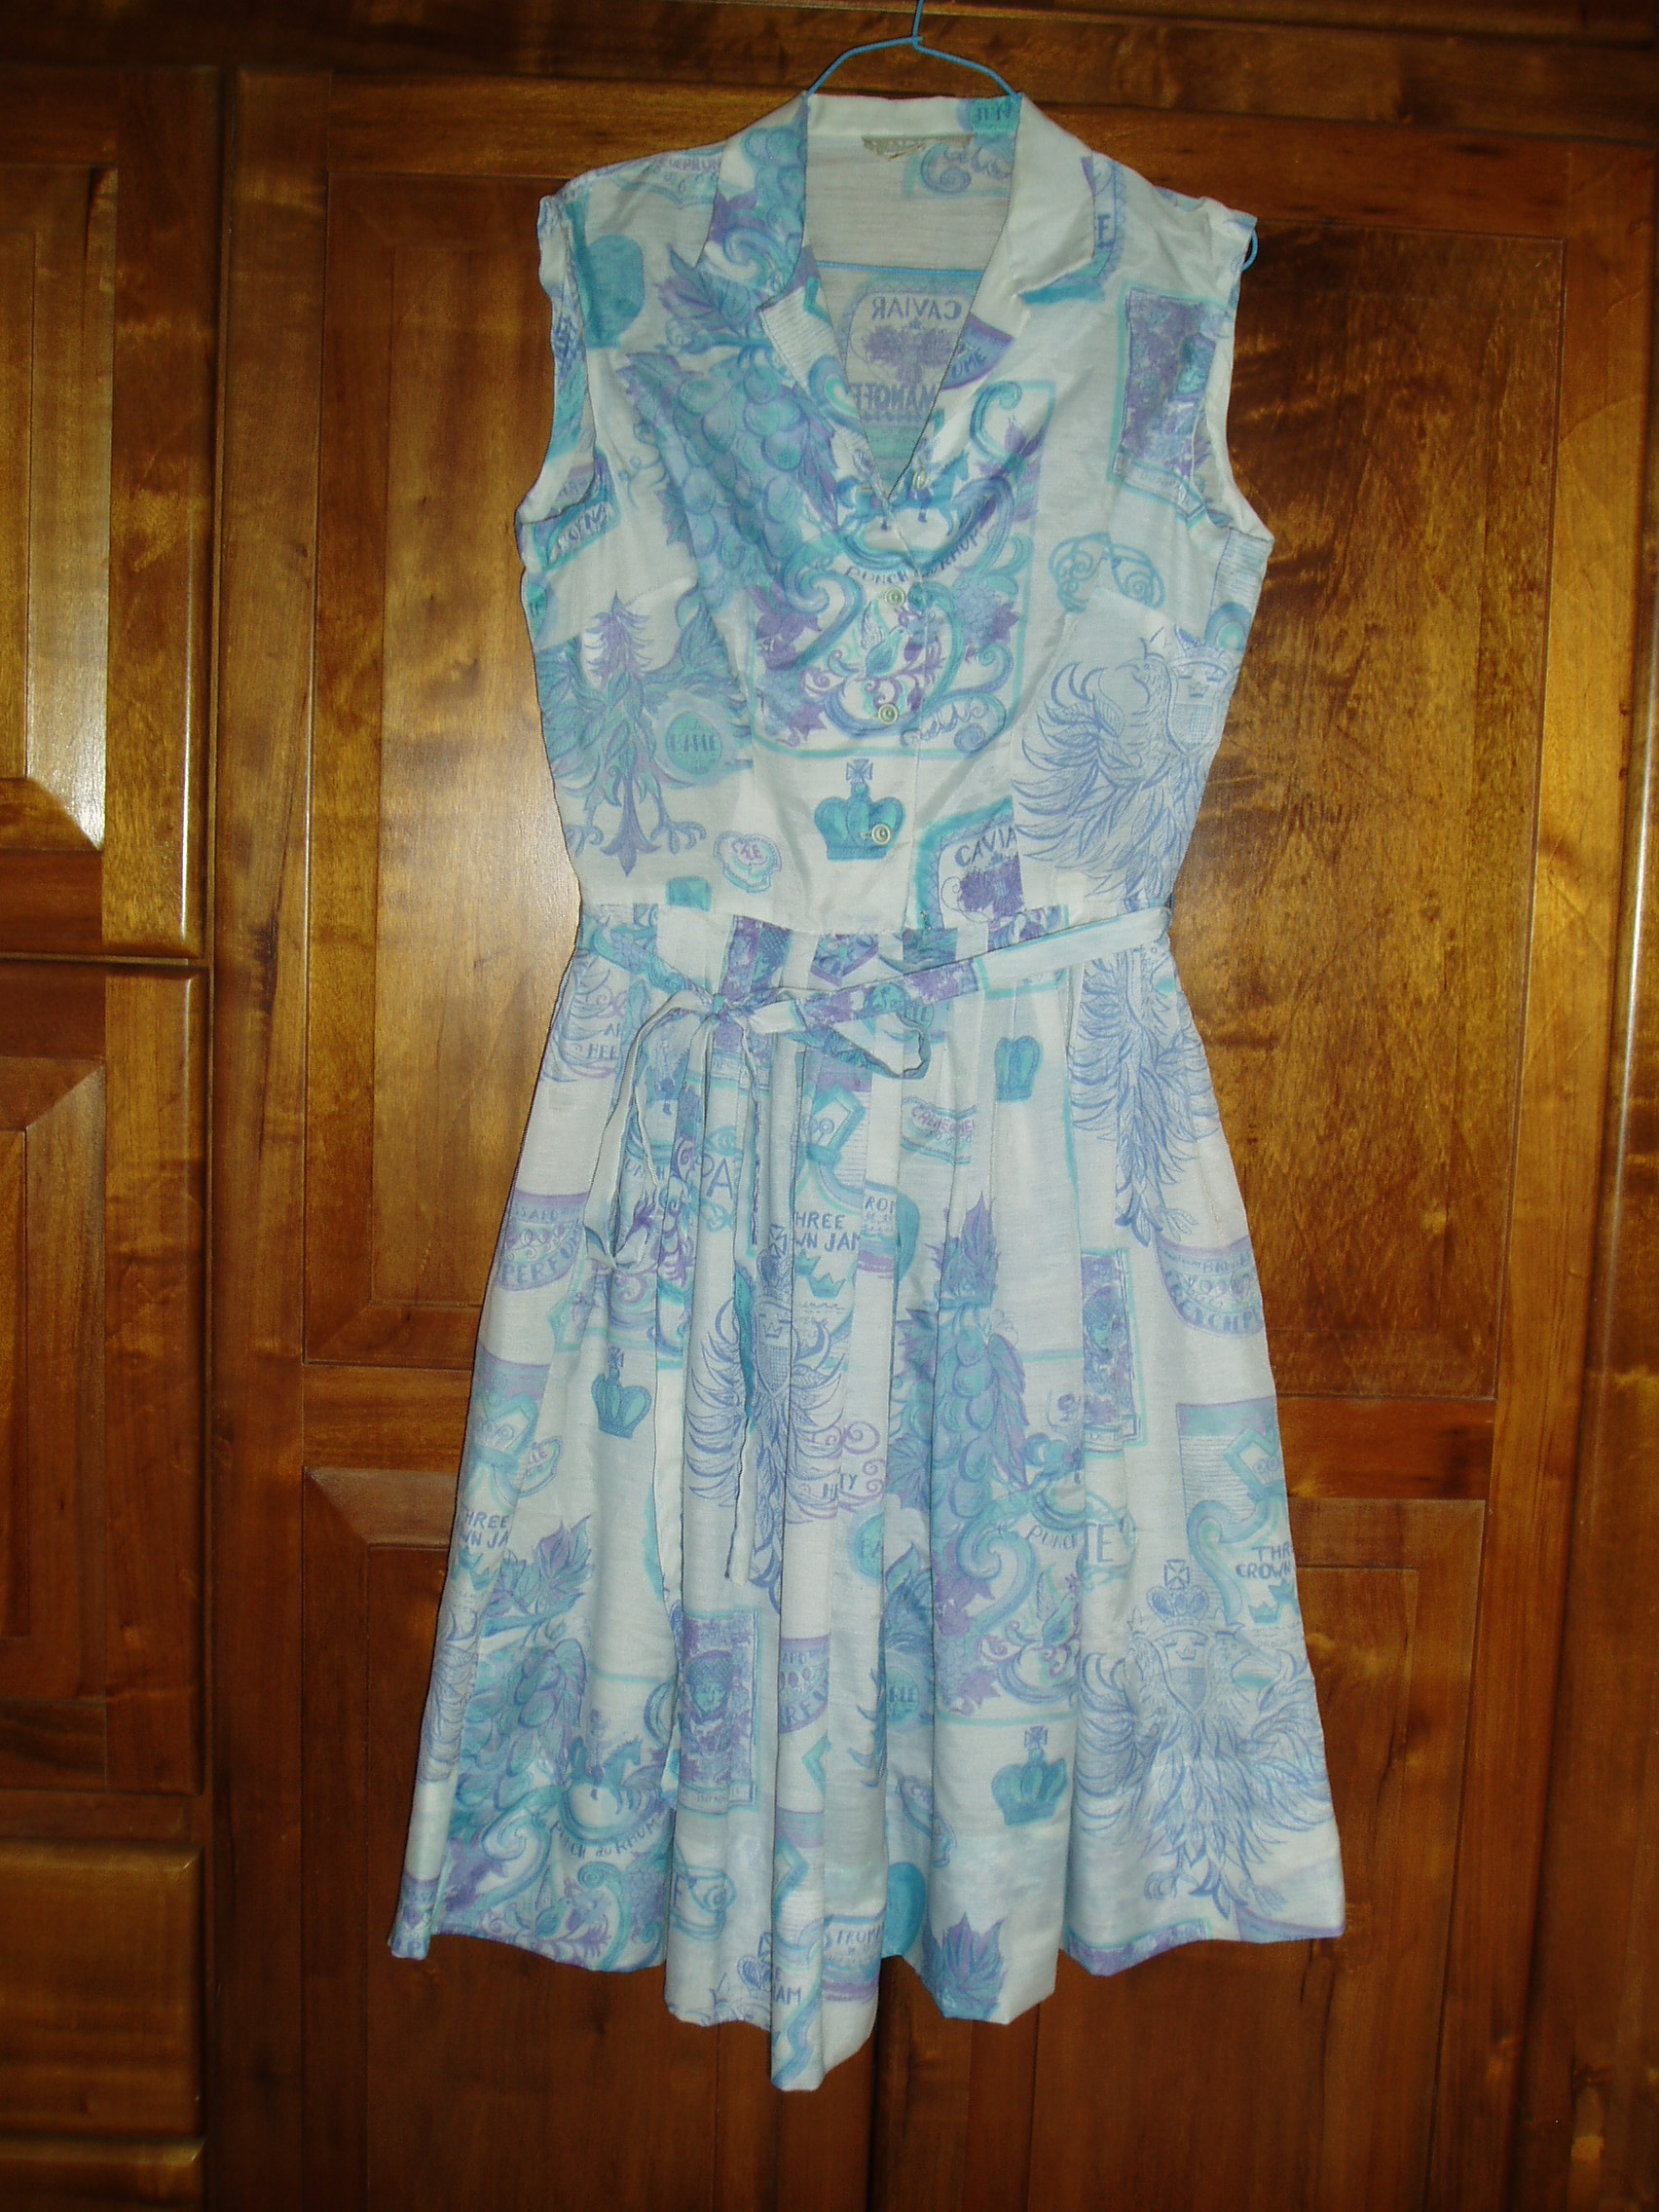 A FAVORITE SPRING/SUMMER DRESS FROM THE FIFTIES, WITH A FRENCH THEME PRINT